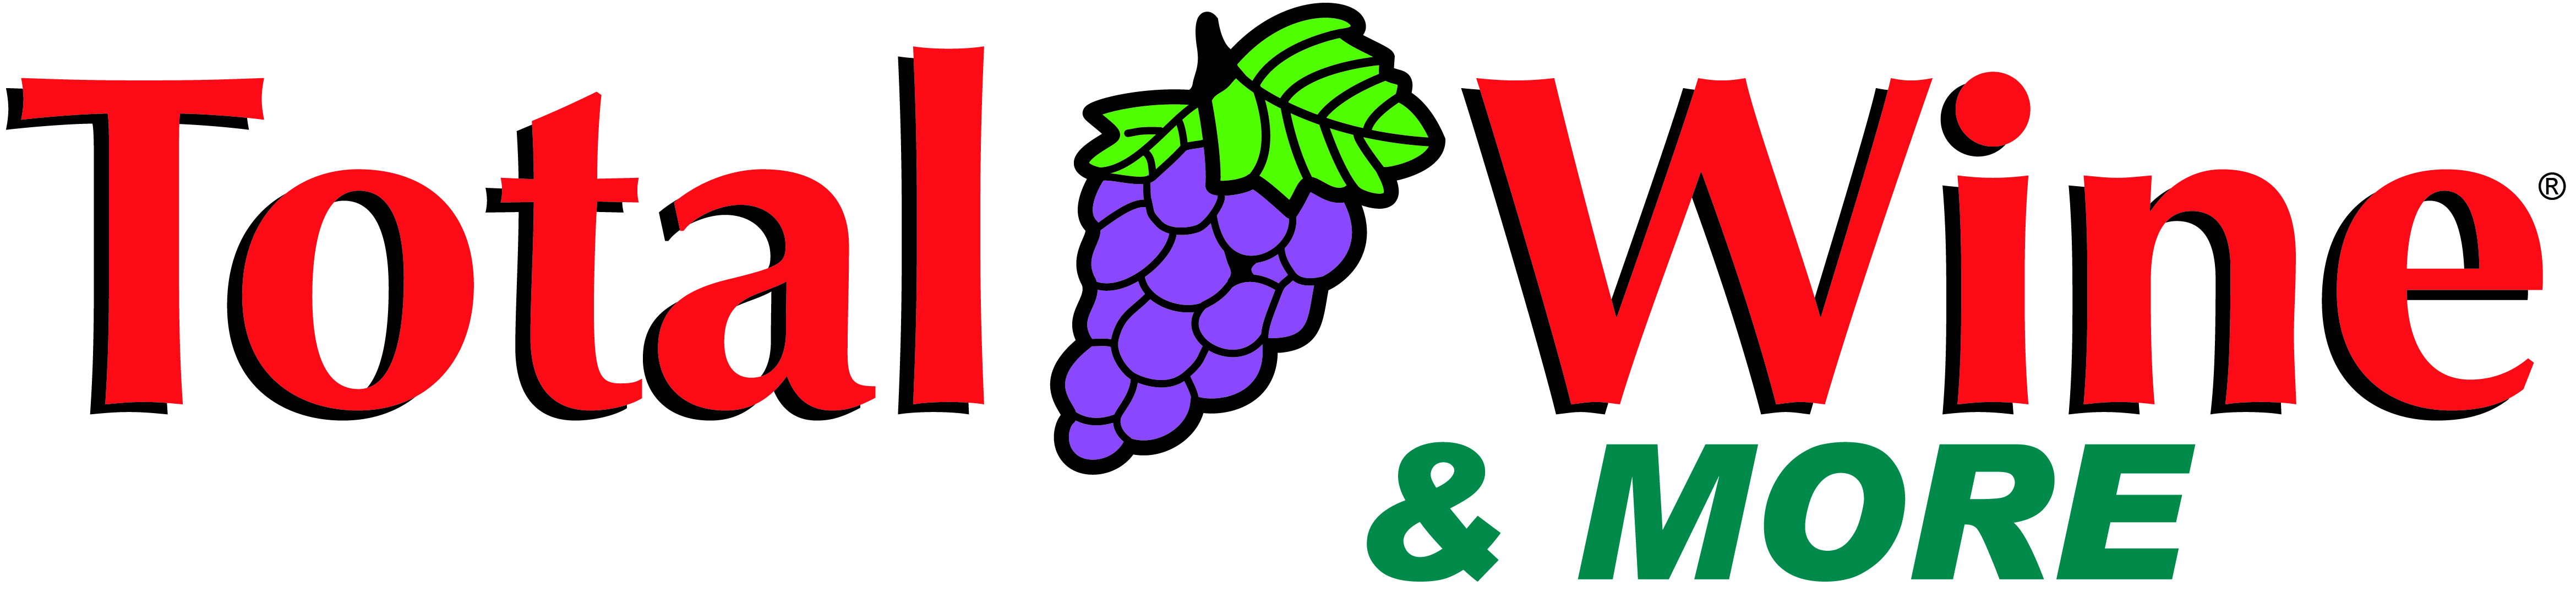 total-wine-and-more-logo.jpg